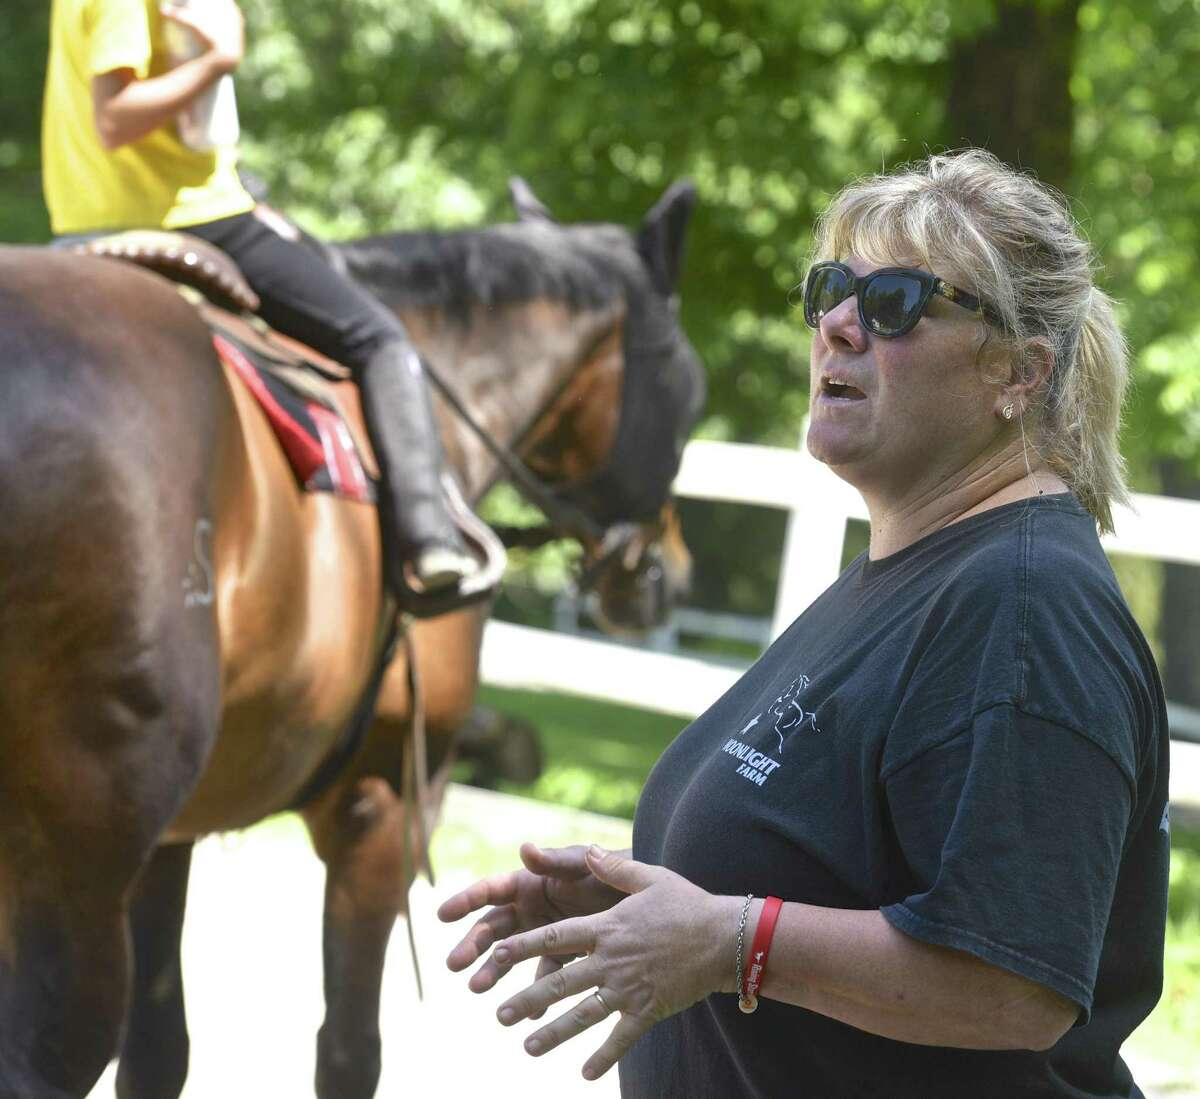 Kelly Stackpole, of Moonlight Farms, in Redding, works with a rider during summer camp. Stackpole also is running Rising Starr Horse Rescue which rescues horses and helps children, teens and adults develop self confidence though riding. Monday, July 3, 2017, in Redding, Conn.